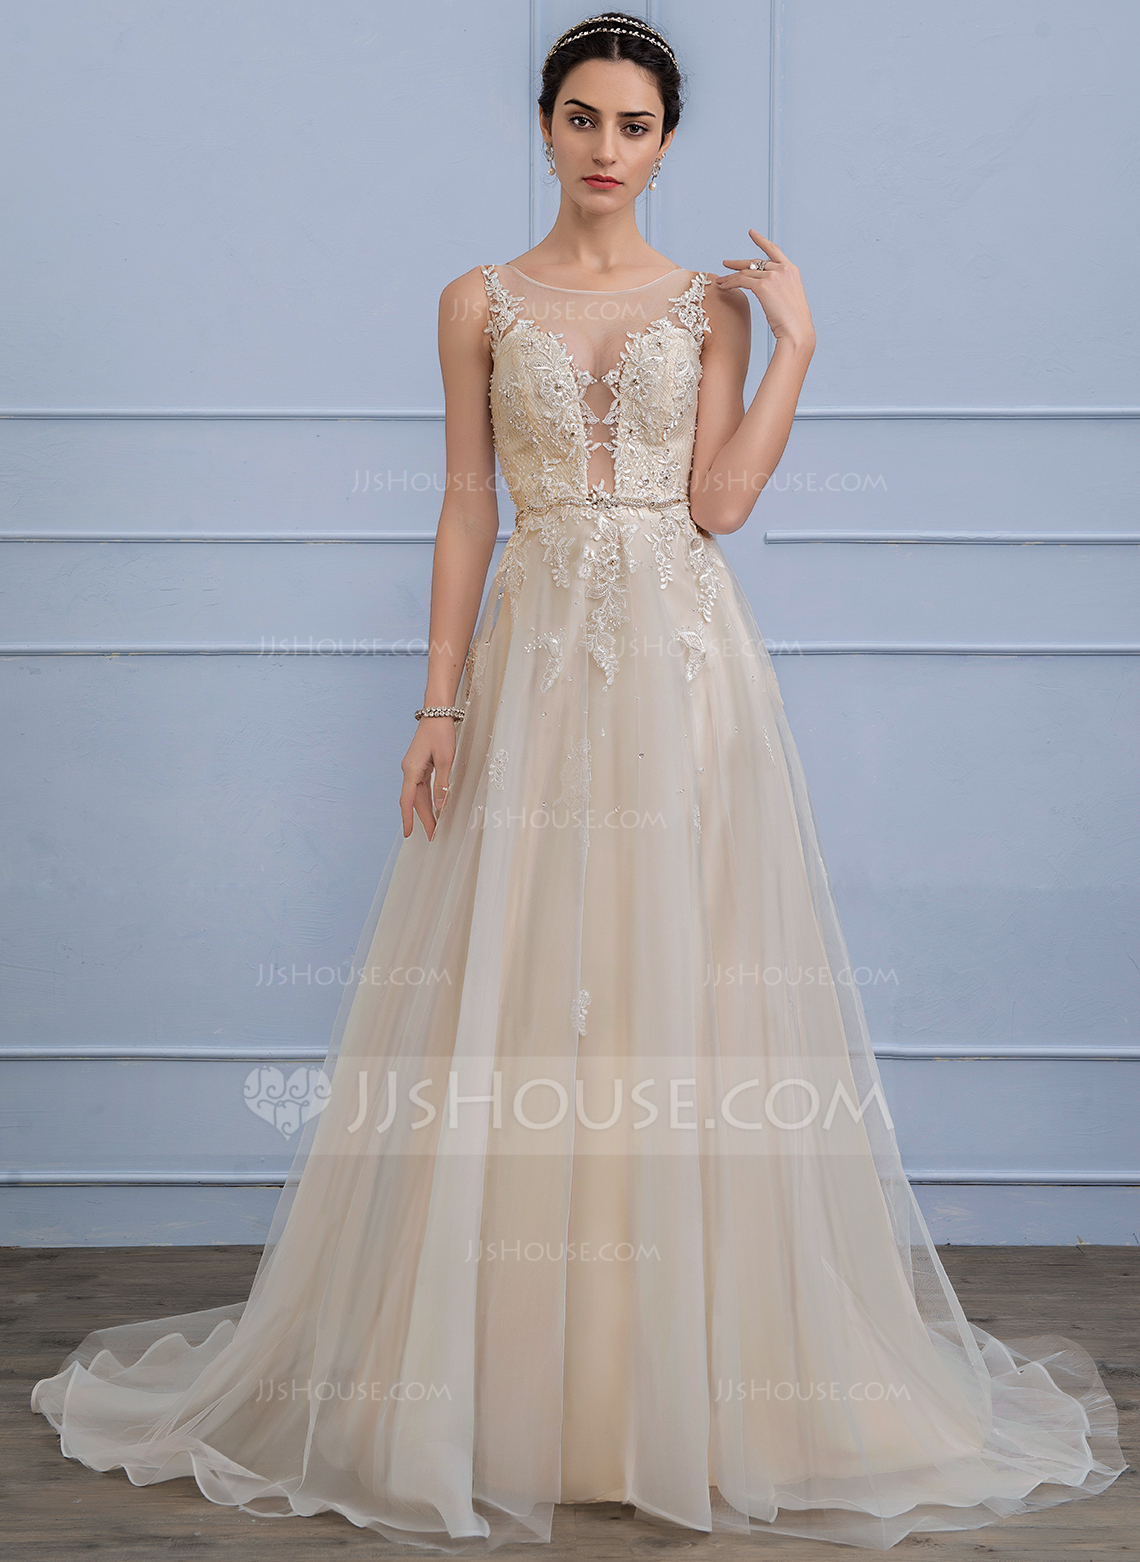 Cheap Wedding Dresses c2 jjs house wedding dresses A Line Princess Scoop Neck Sweep Train Tulle Lace Wedding Dress With Beading Sequins